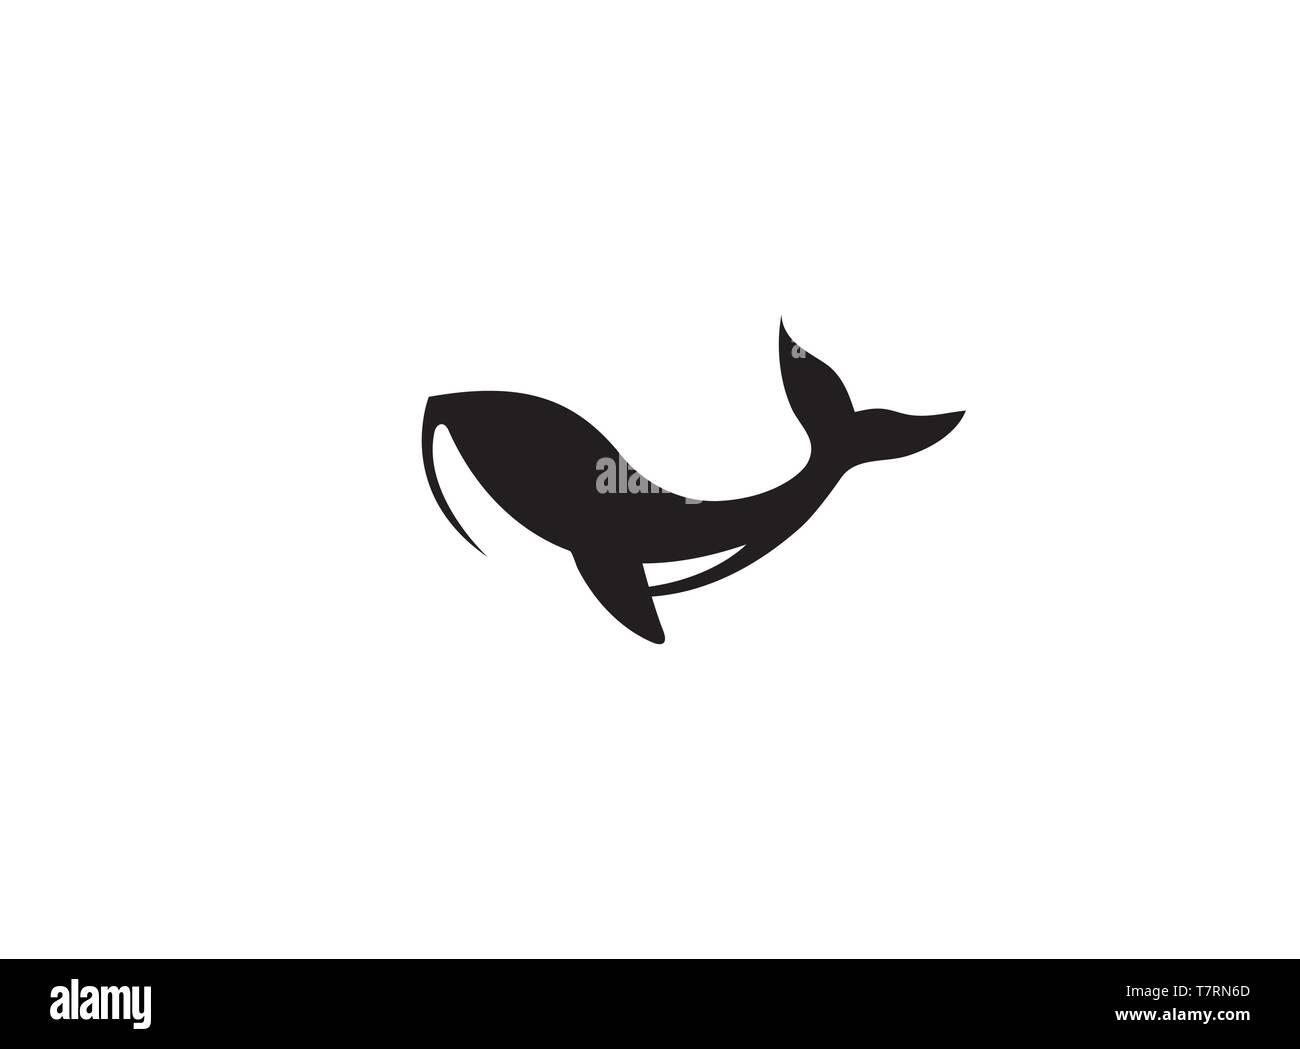 Humpback an ocean's giant whale for logo - Stock Image